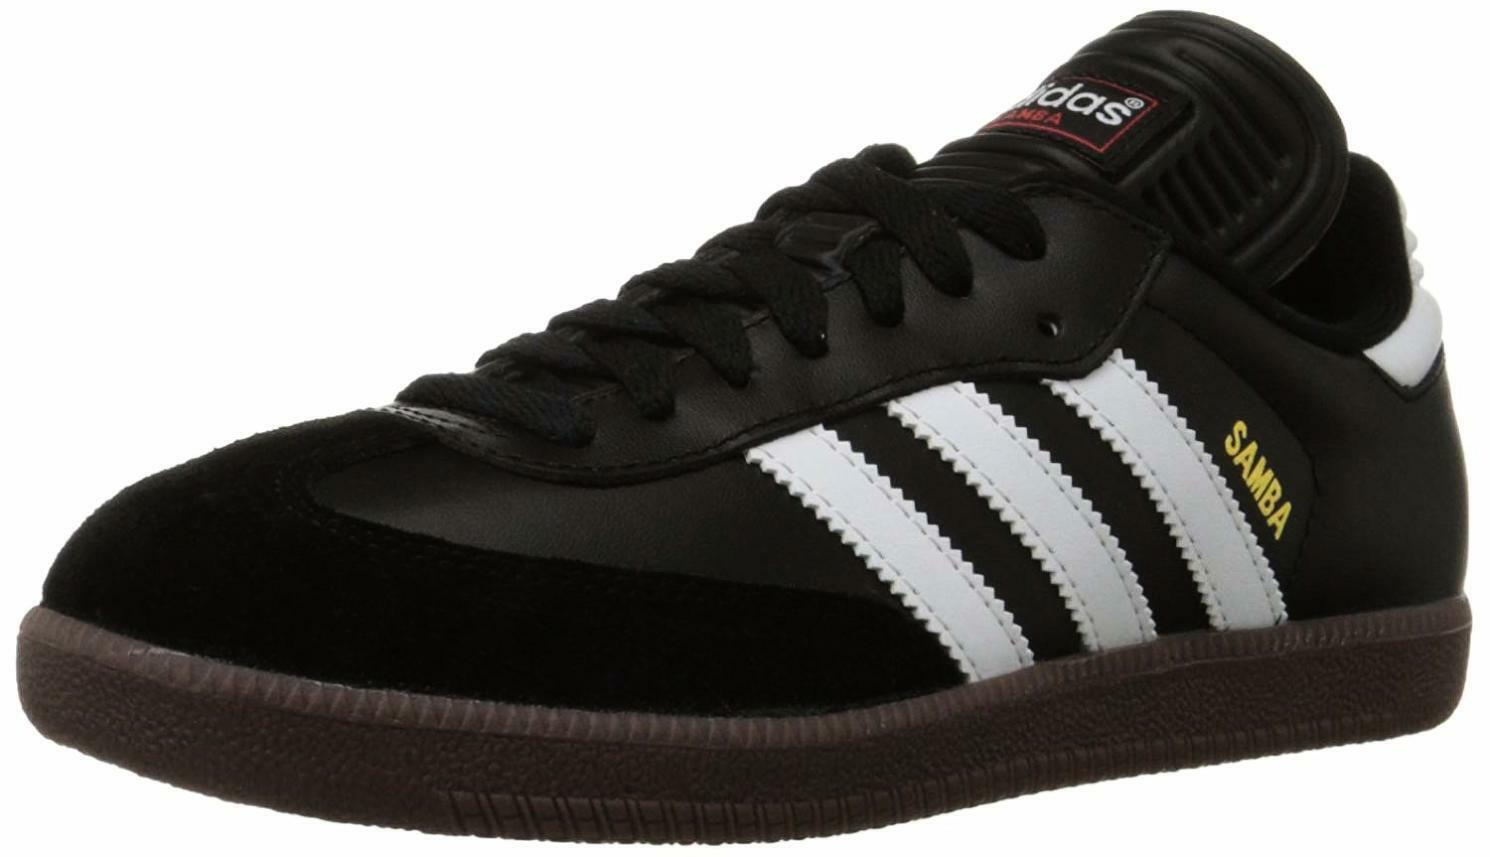 Adidas performance männer samba classic classic classic indoor - fußball - schuh - farbe wählen, sz / 95ccc9